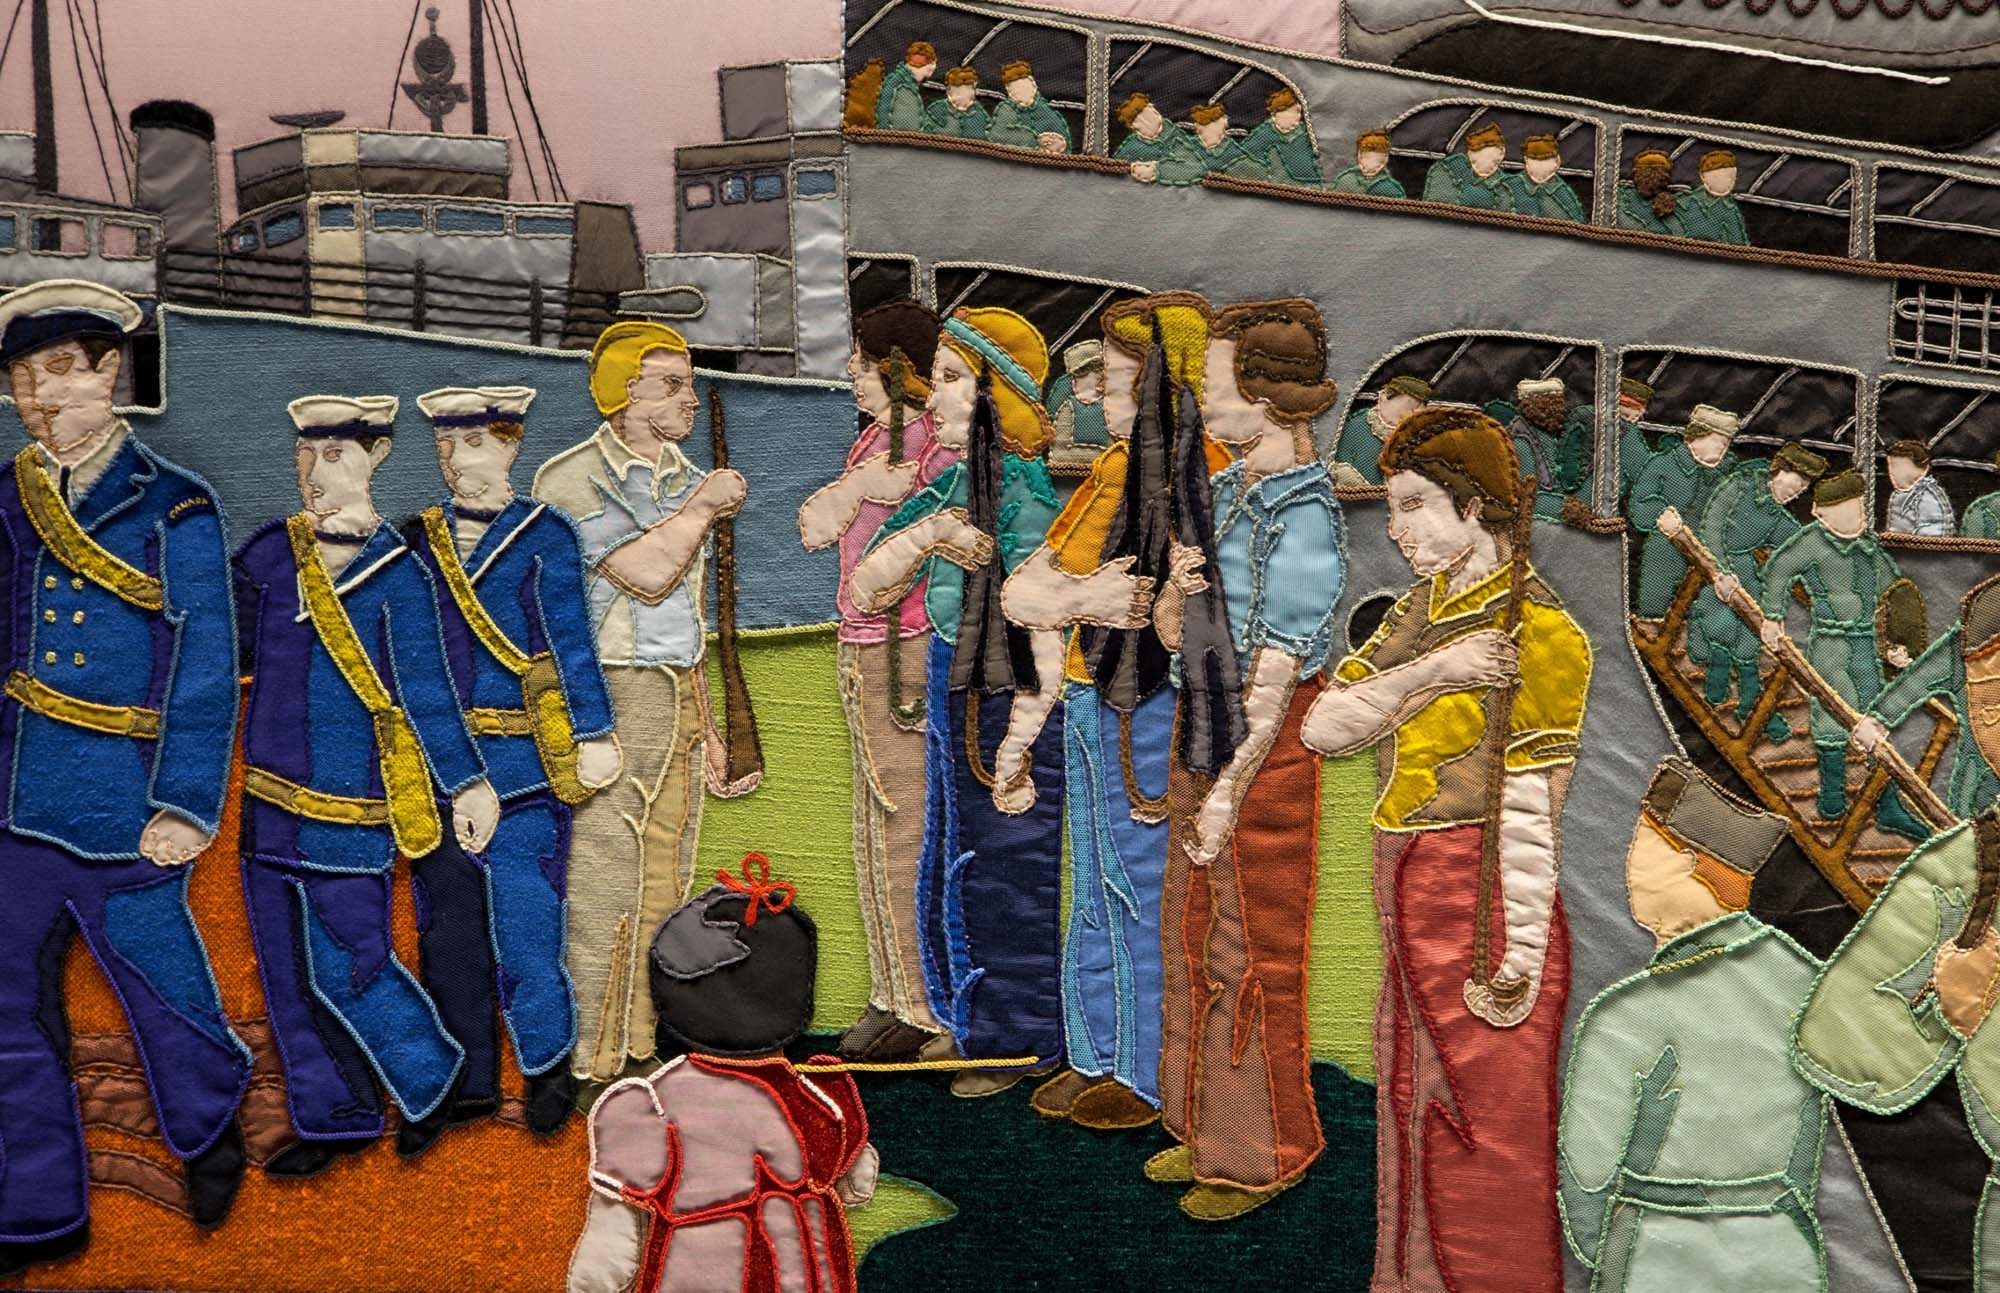 A panel from the Overlord embroidery showing embarkation of soldiers and sailors